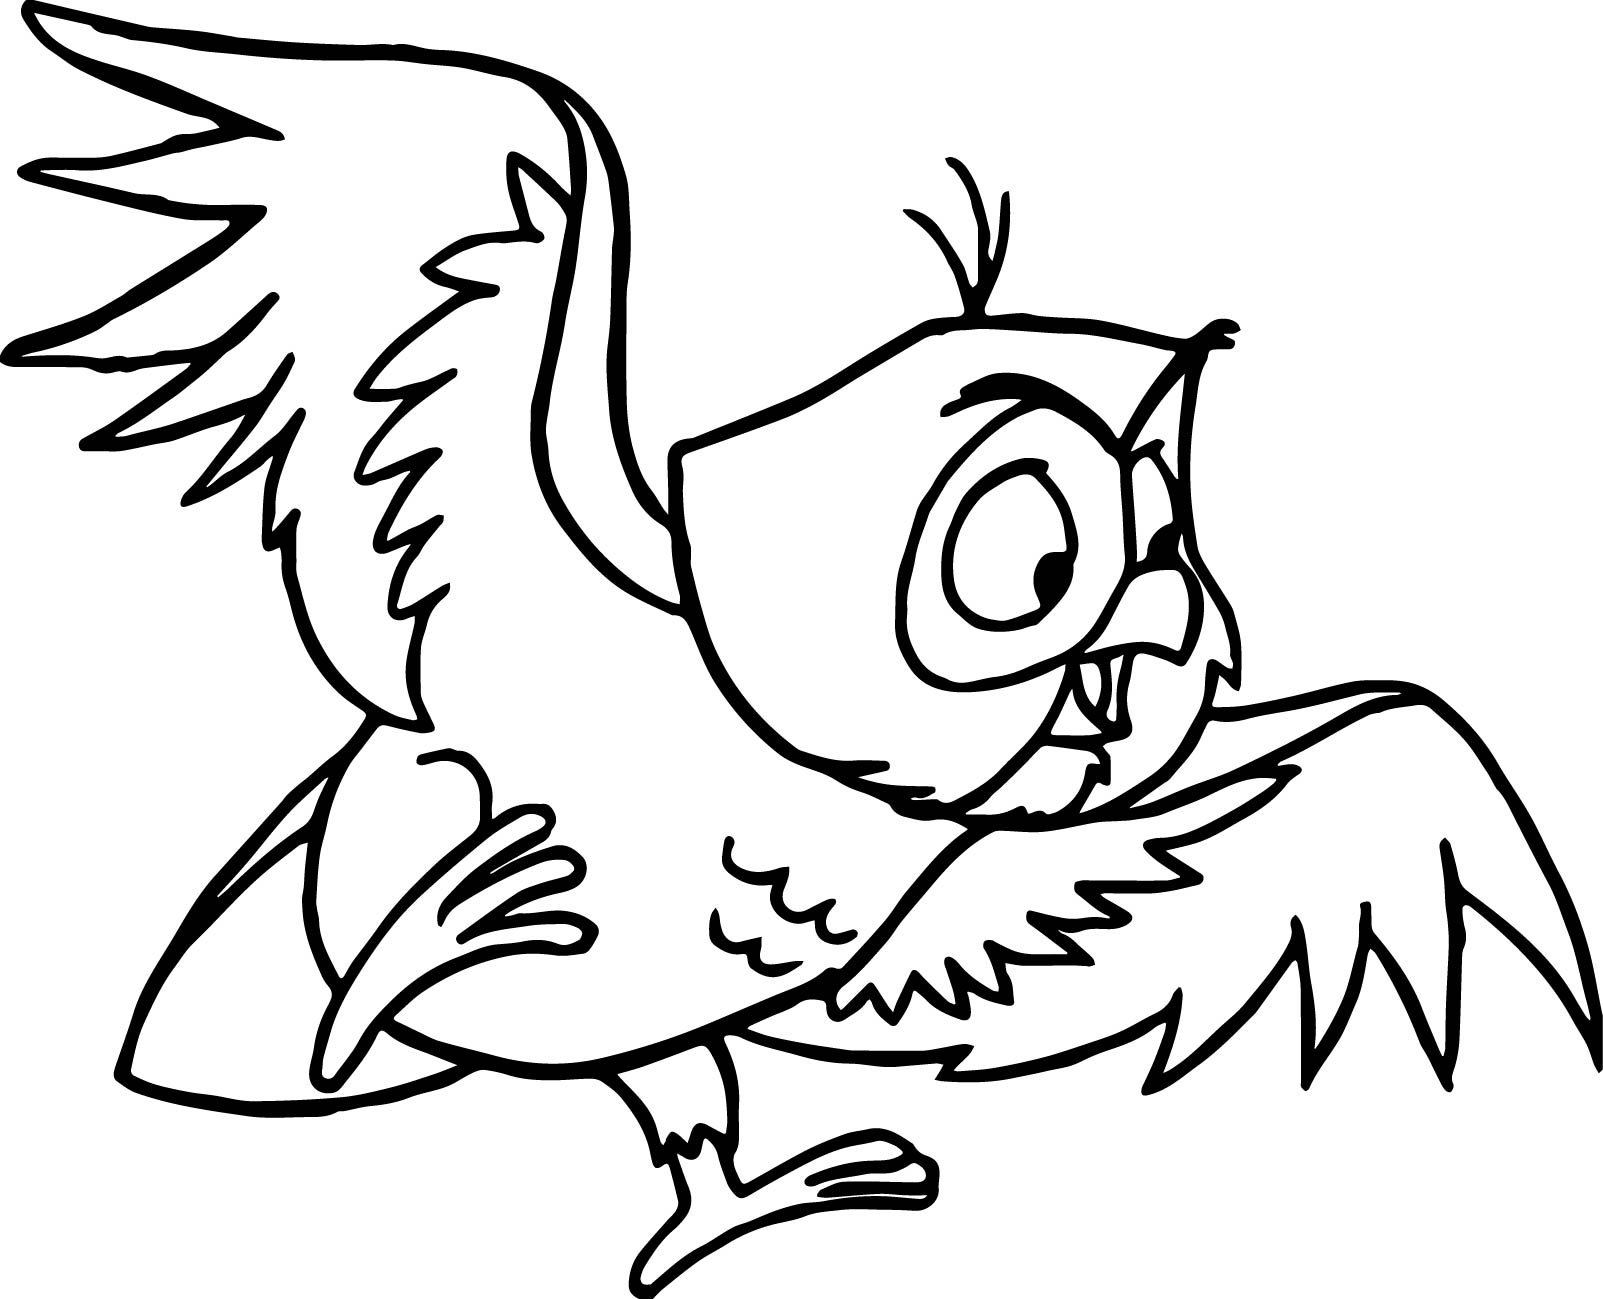 Aurora Misc Sleeping Beauty Animal Owl Coloring Page Wecoloringpage